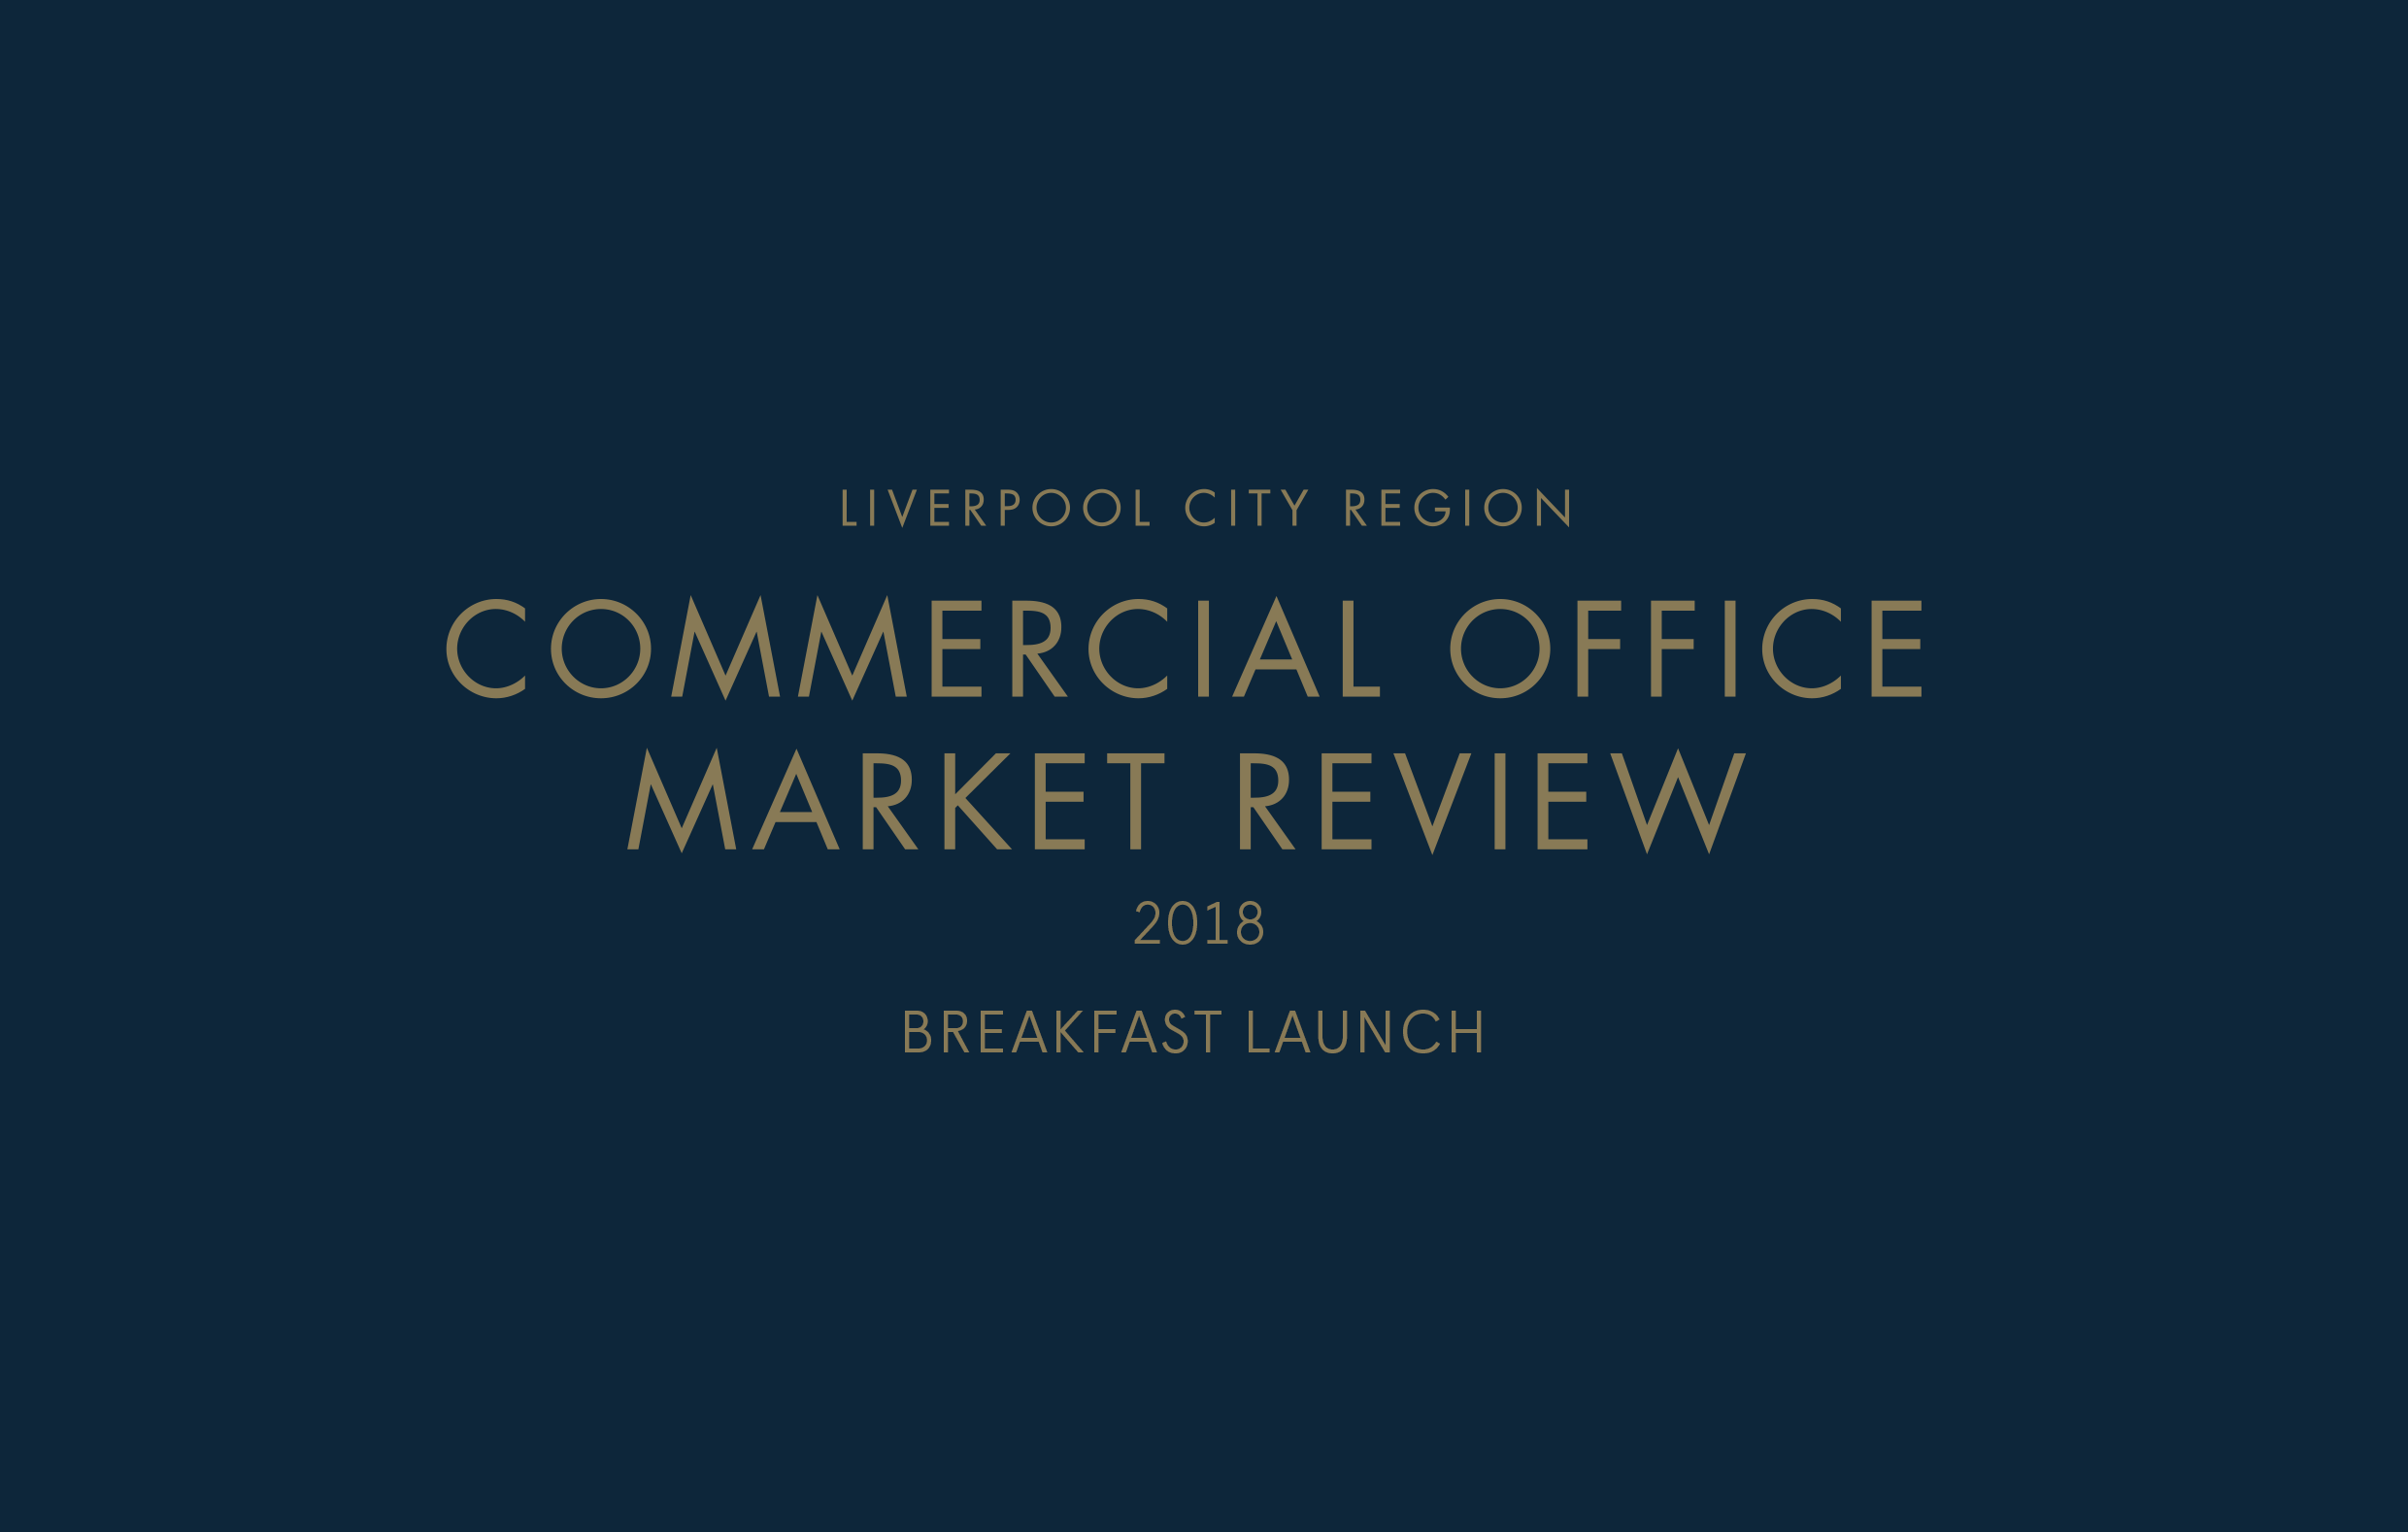 Office Market Review 2018 - 2